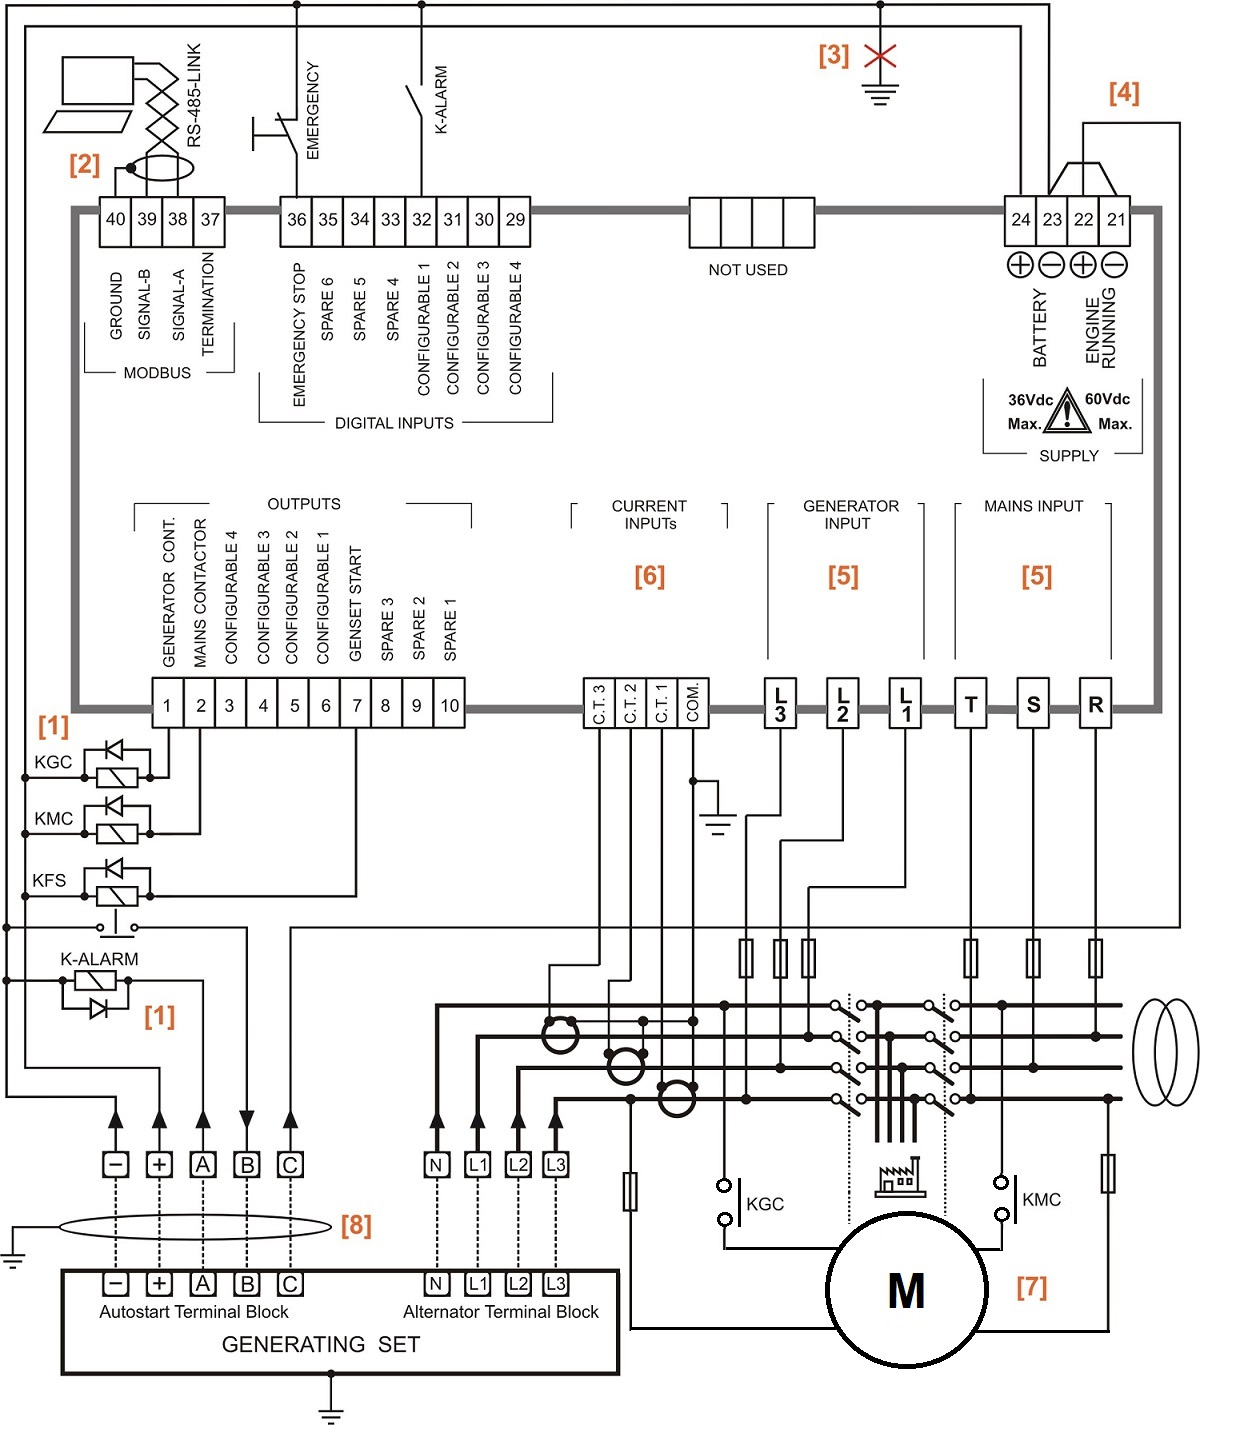 automatic changeover switch for generator circuit diagram ...